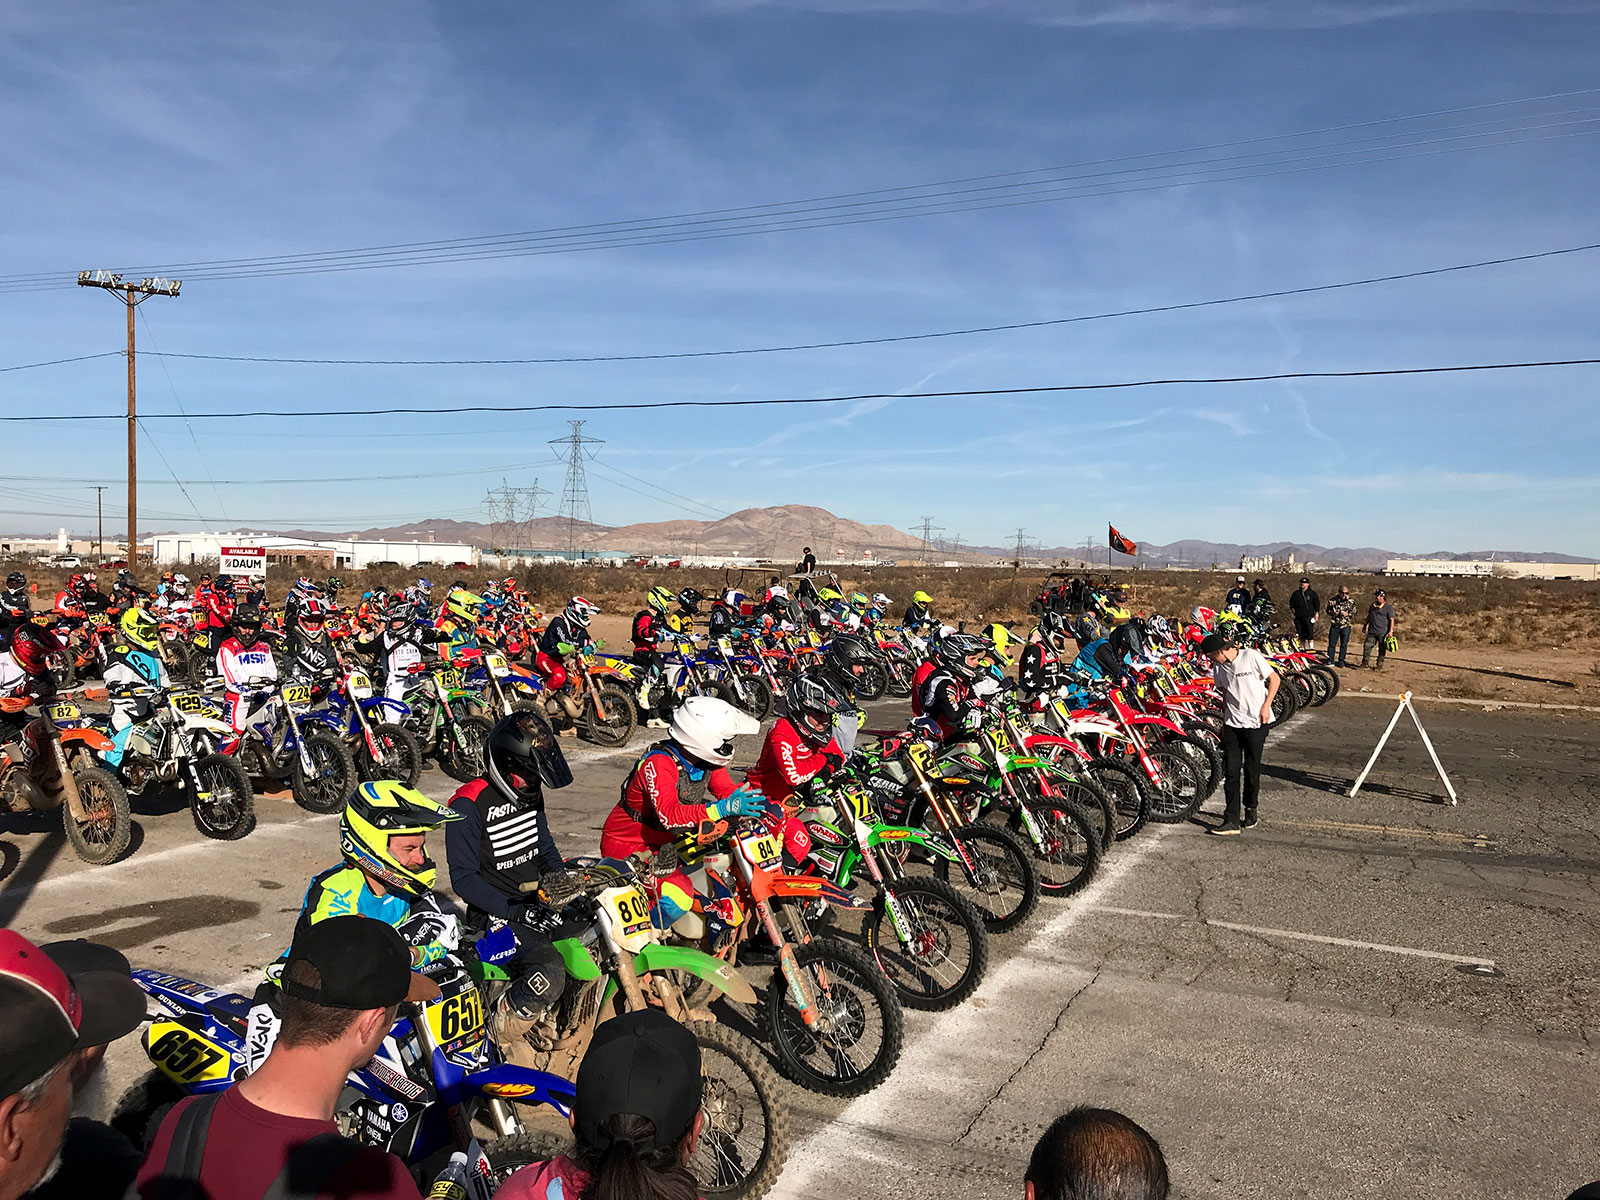 The depth of the Pro class field was impressive with nearly ten riders capable of winning.